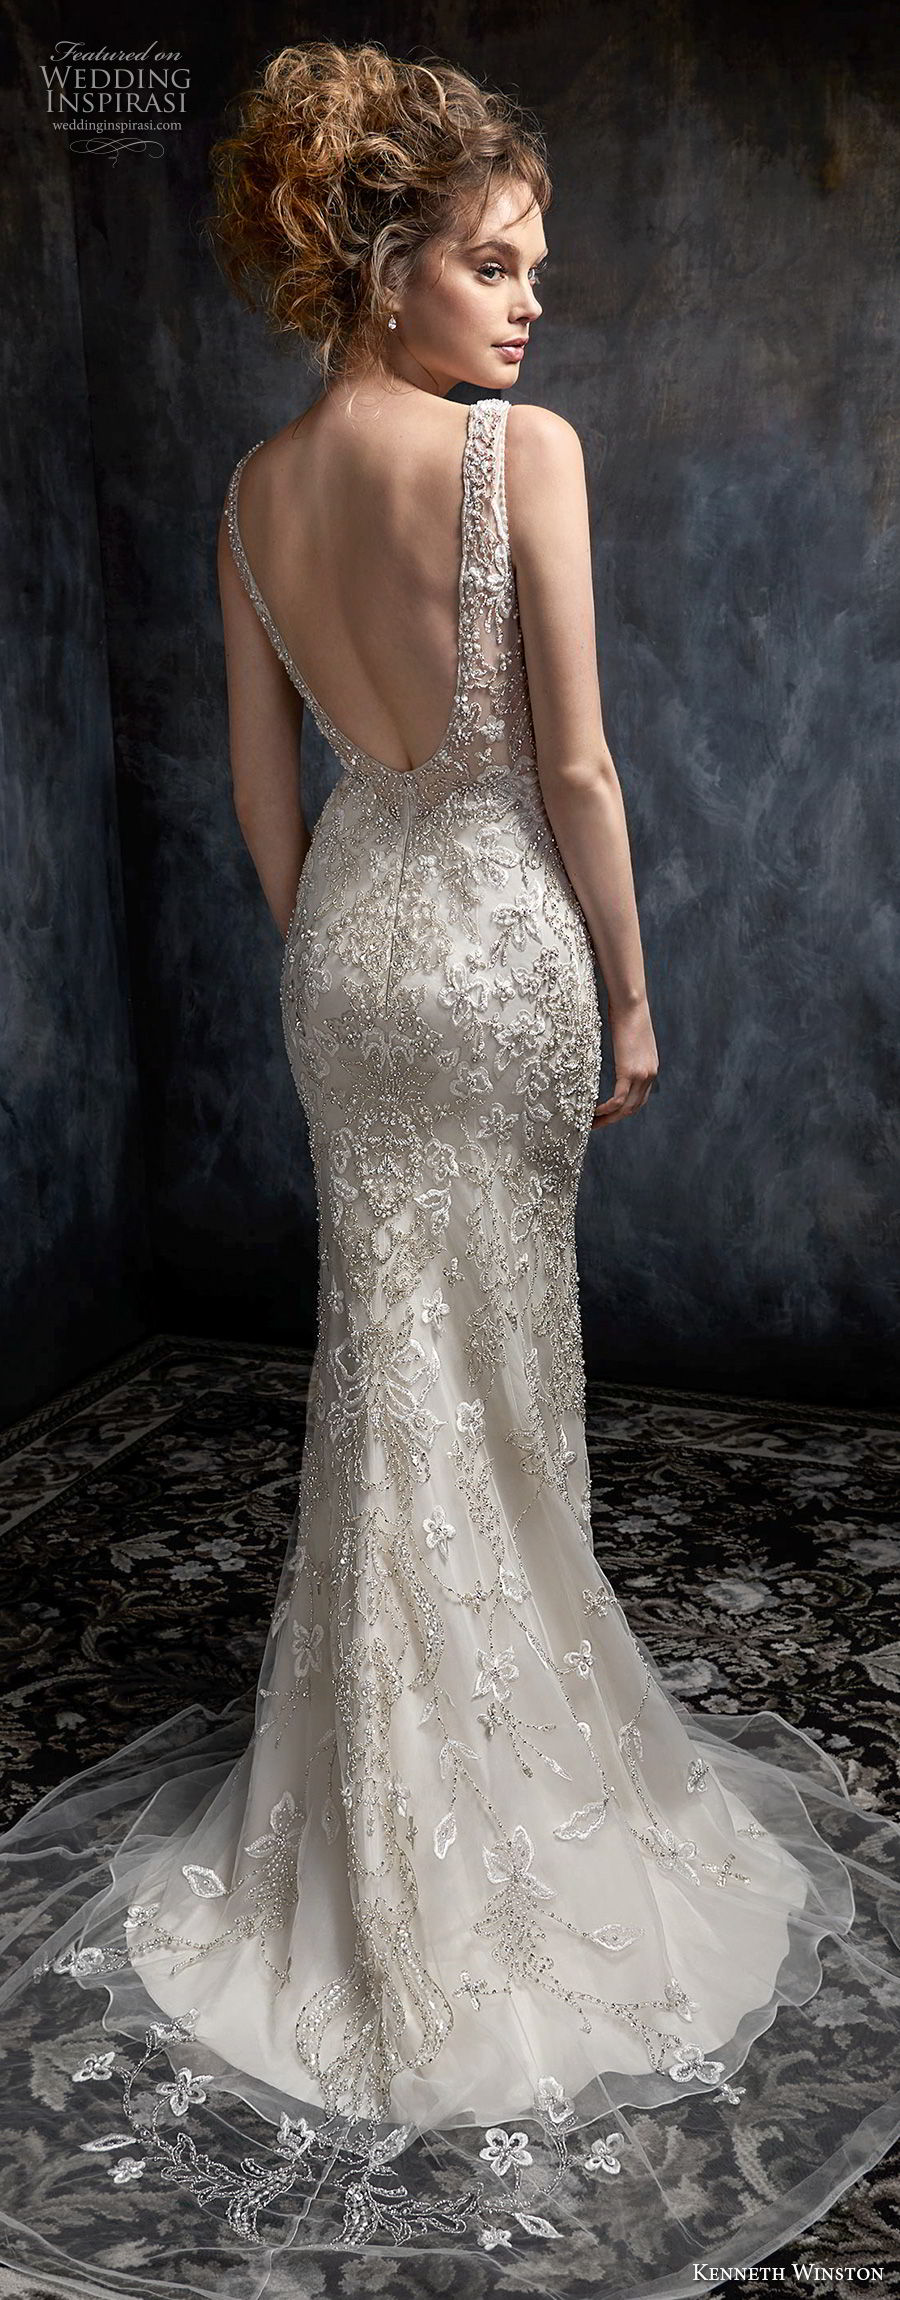 kenneth winston fall 2017 bridal sleeveless with strap sweetheart neckline full beaded embellishment elegant glamorous sheath wedding dress low open back sweep train (46) bv